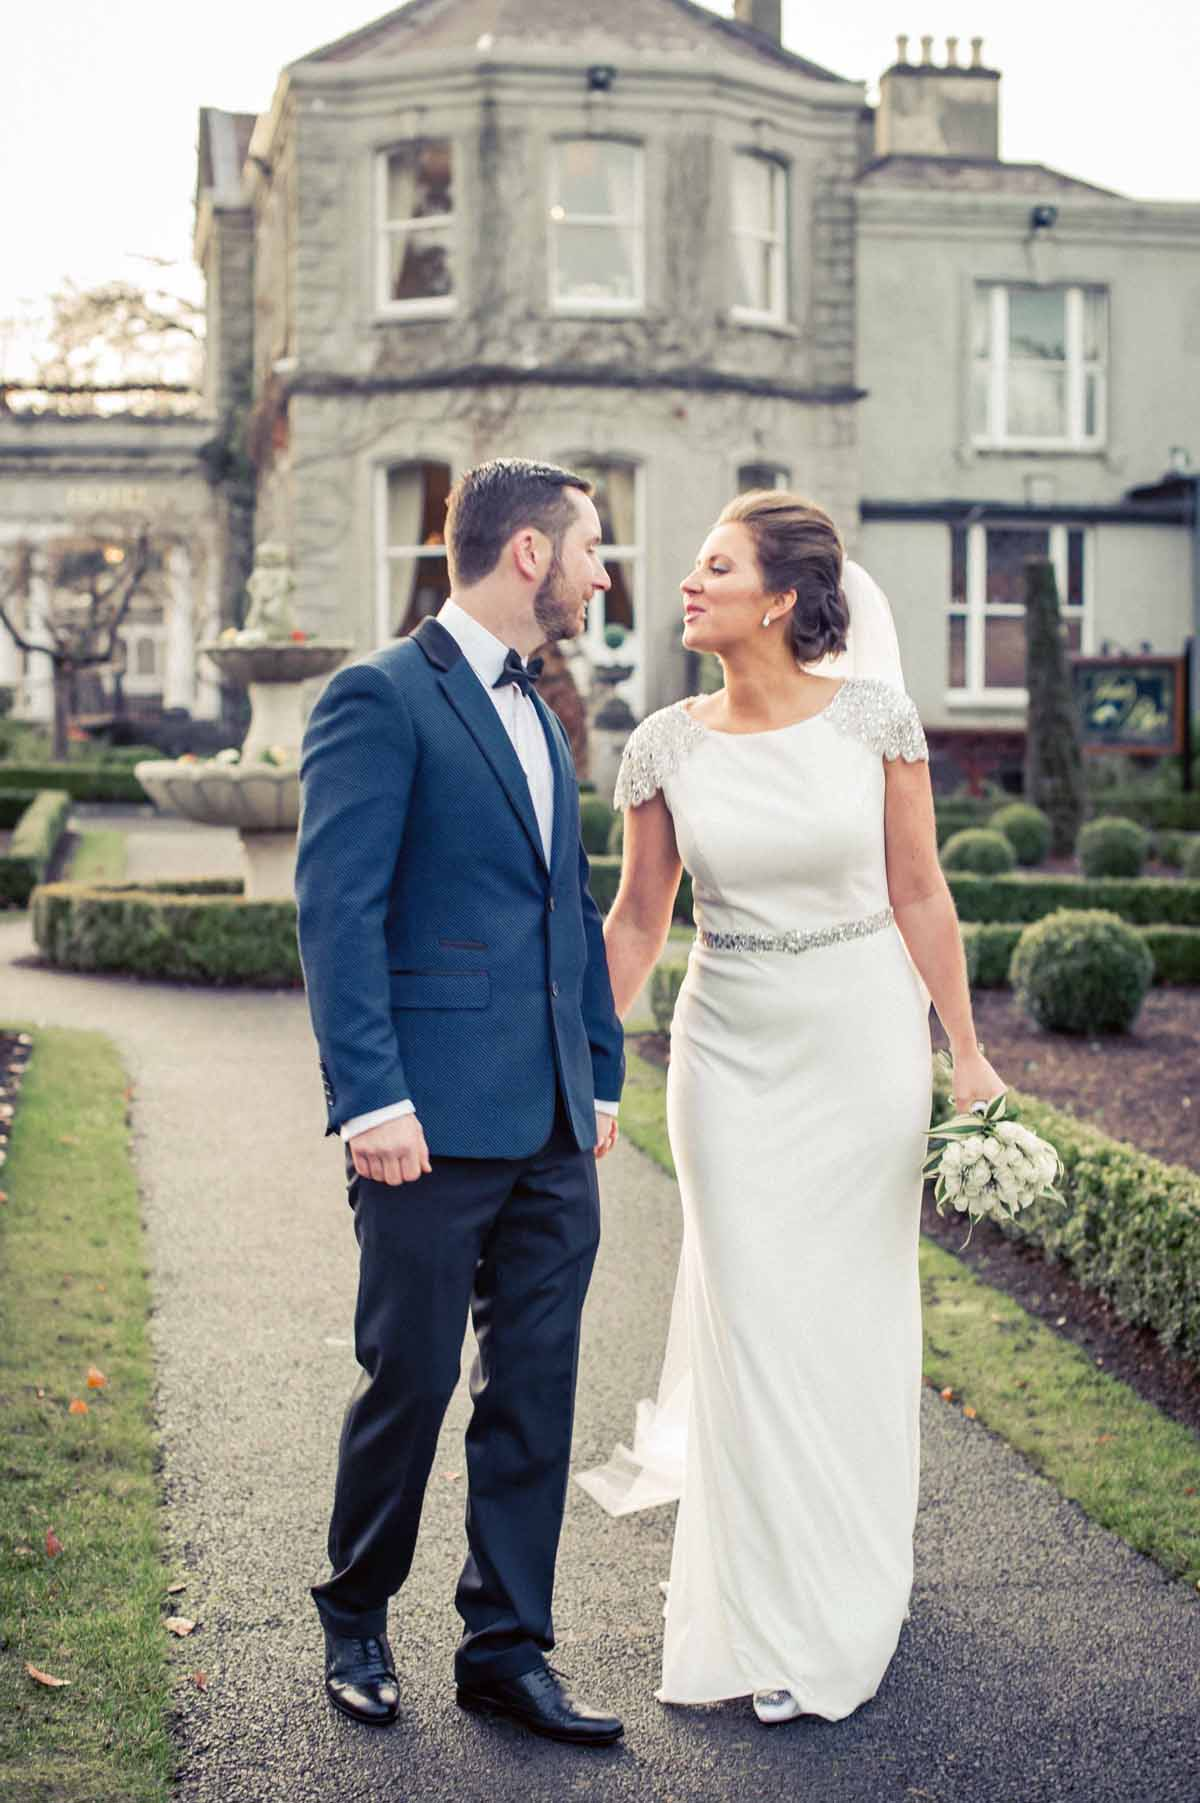 Wedding Photography in the grounds of Finnstown Country House Hotel